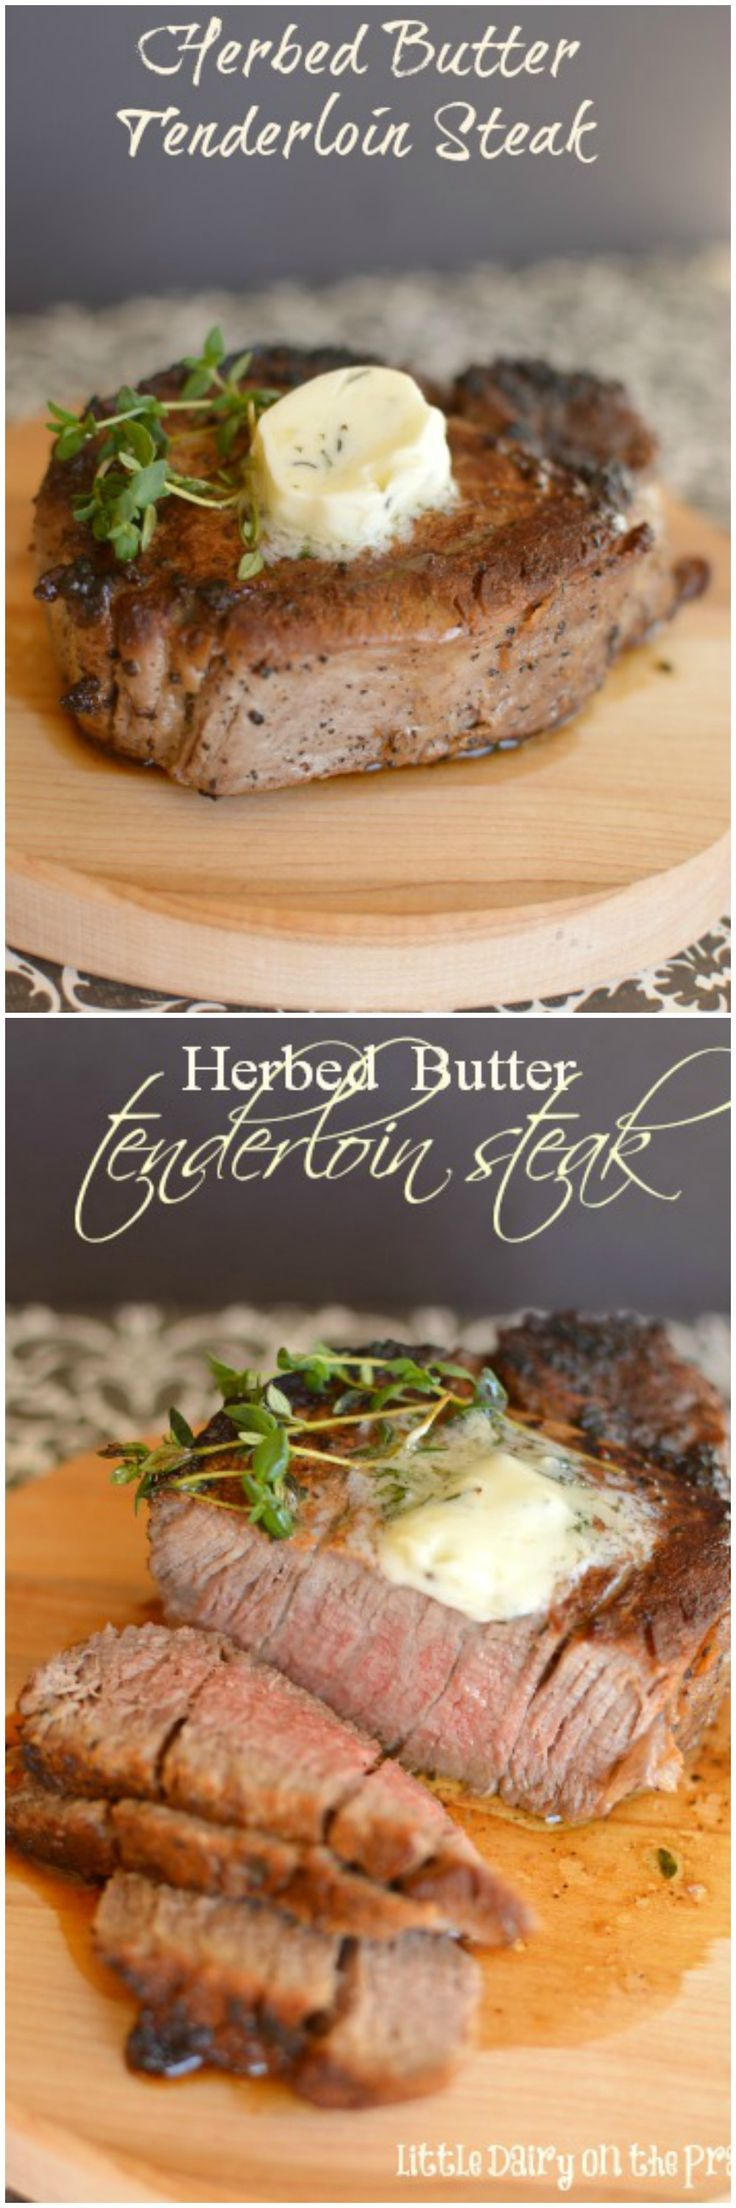 Herbed Butter Tenderloin Steak is melt in your mouth tender, has the best savory flavors, and is made exactly like they make them in your favorite restaurant!